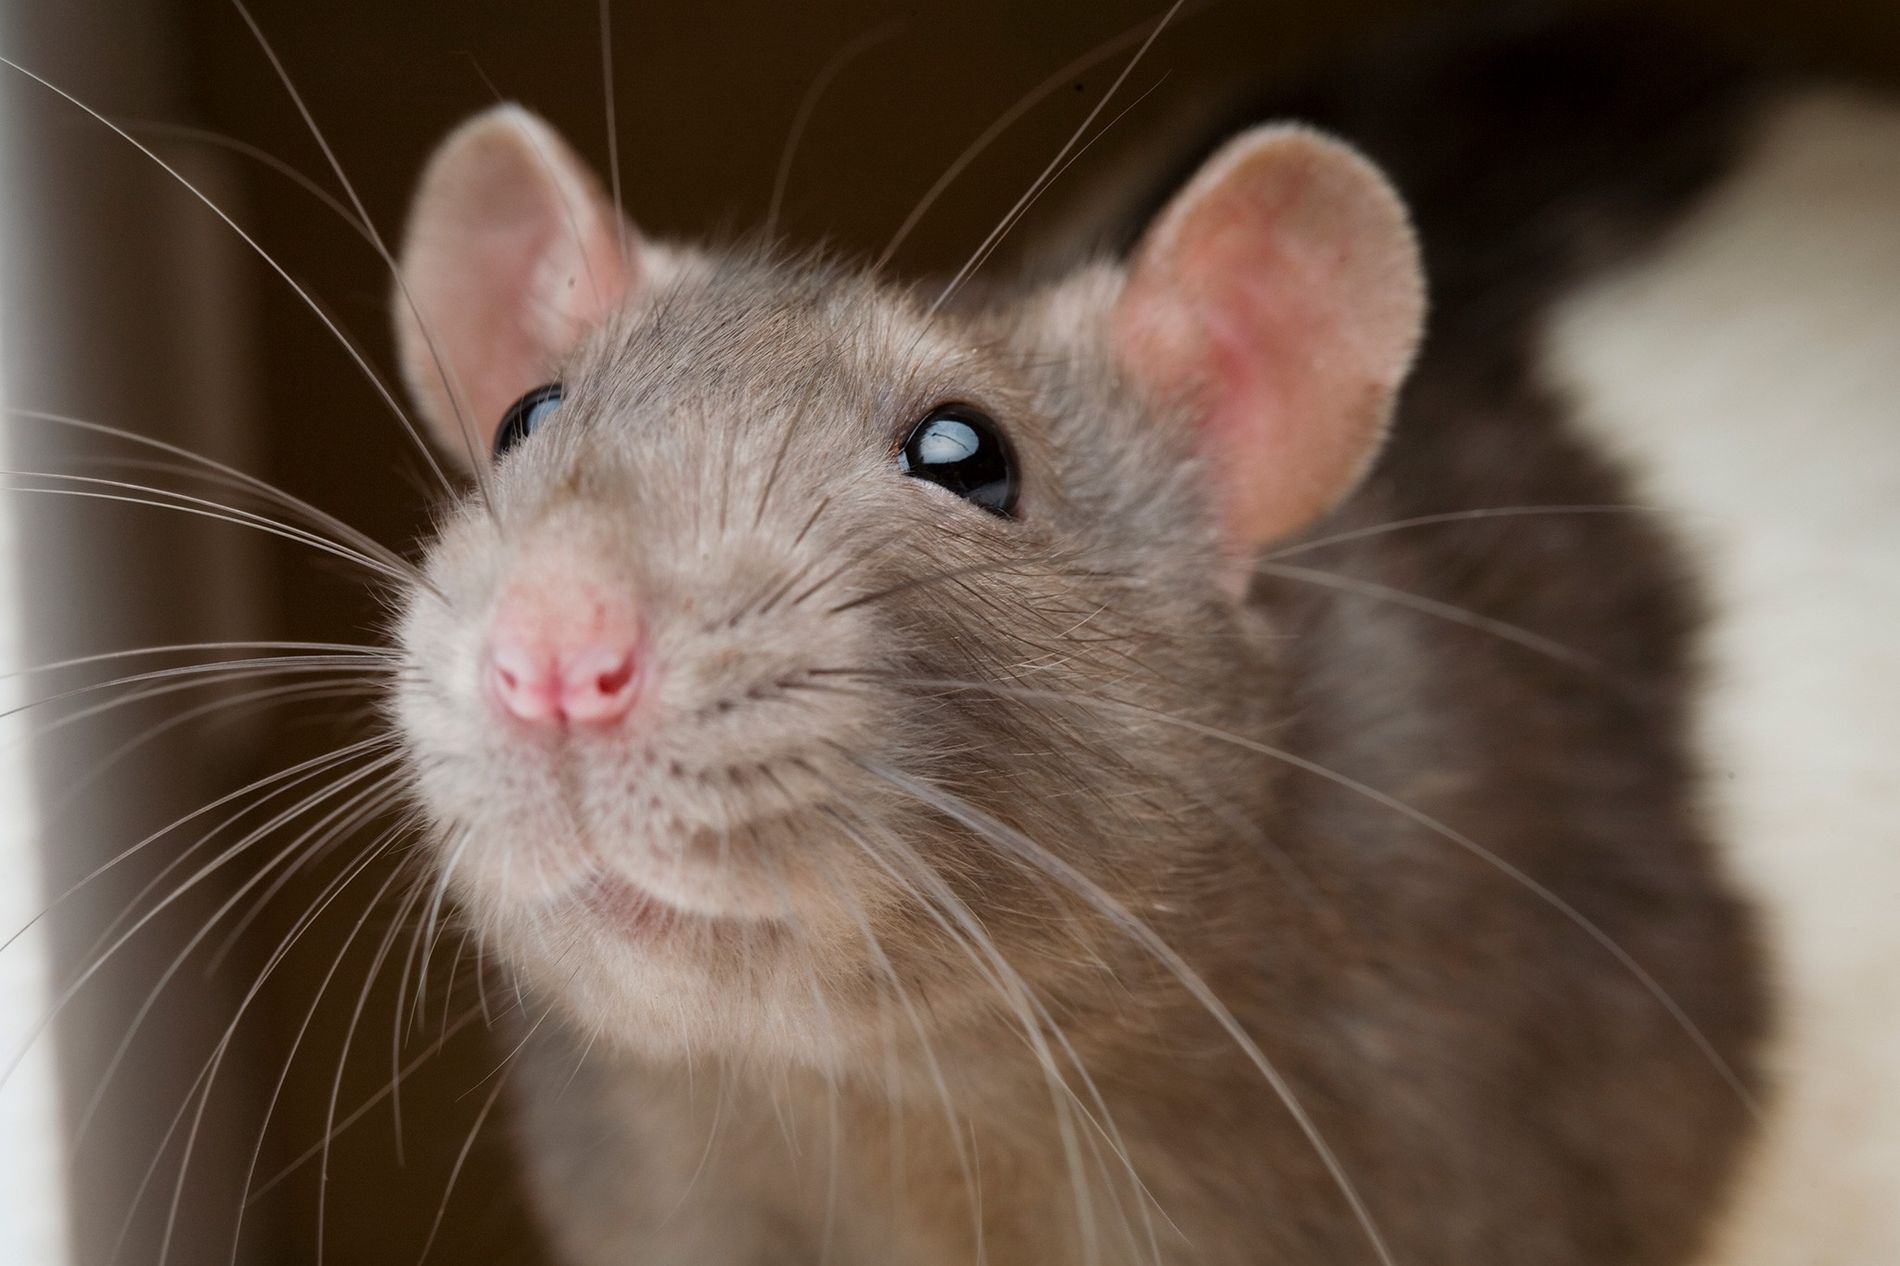 Rats and humans share the same part of the brain that regulates harm aversion, the anterior ...